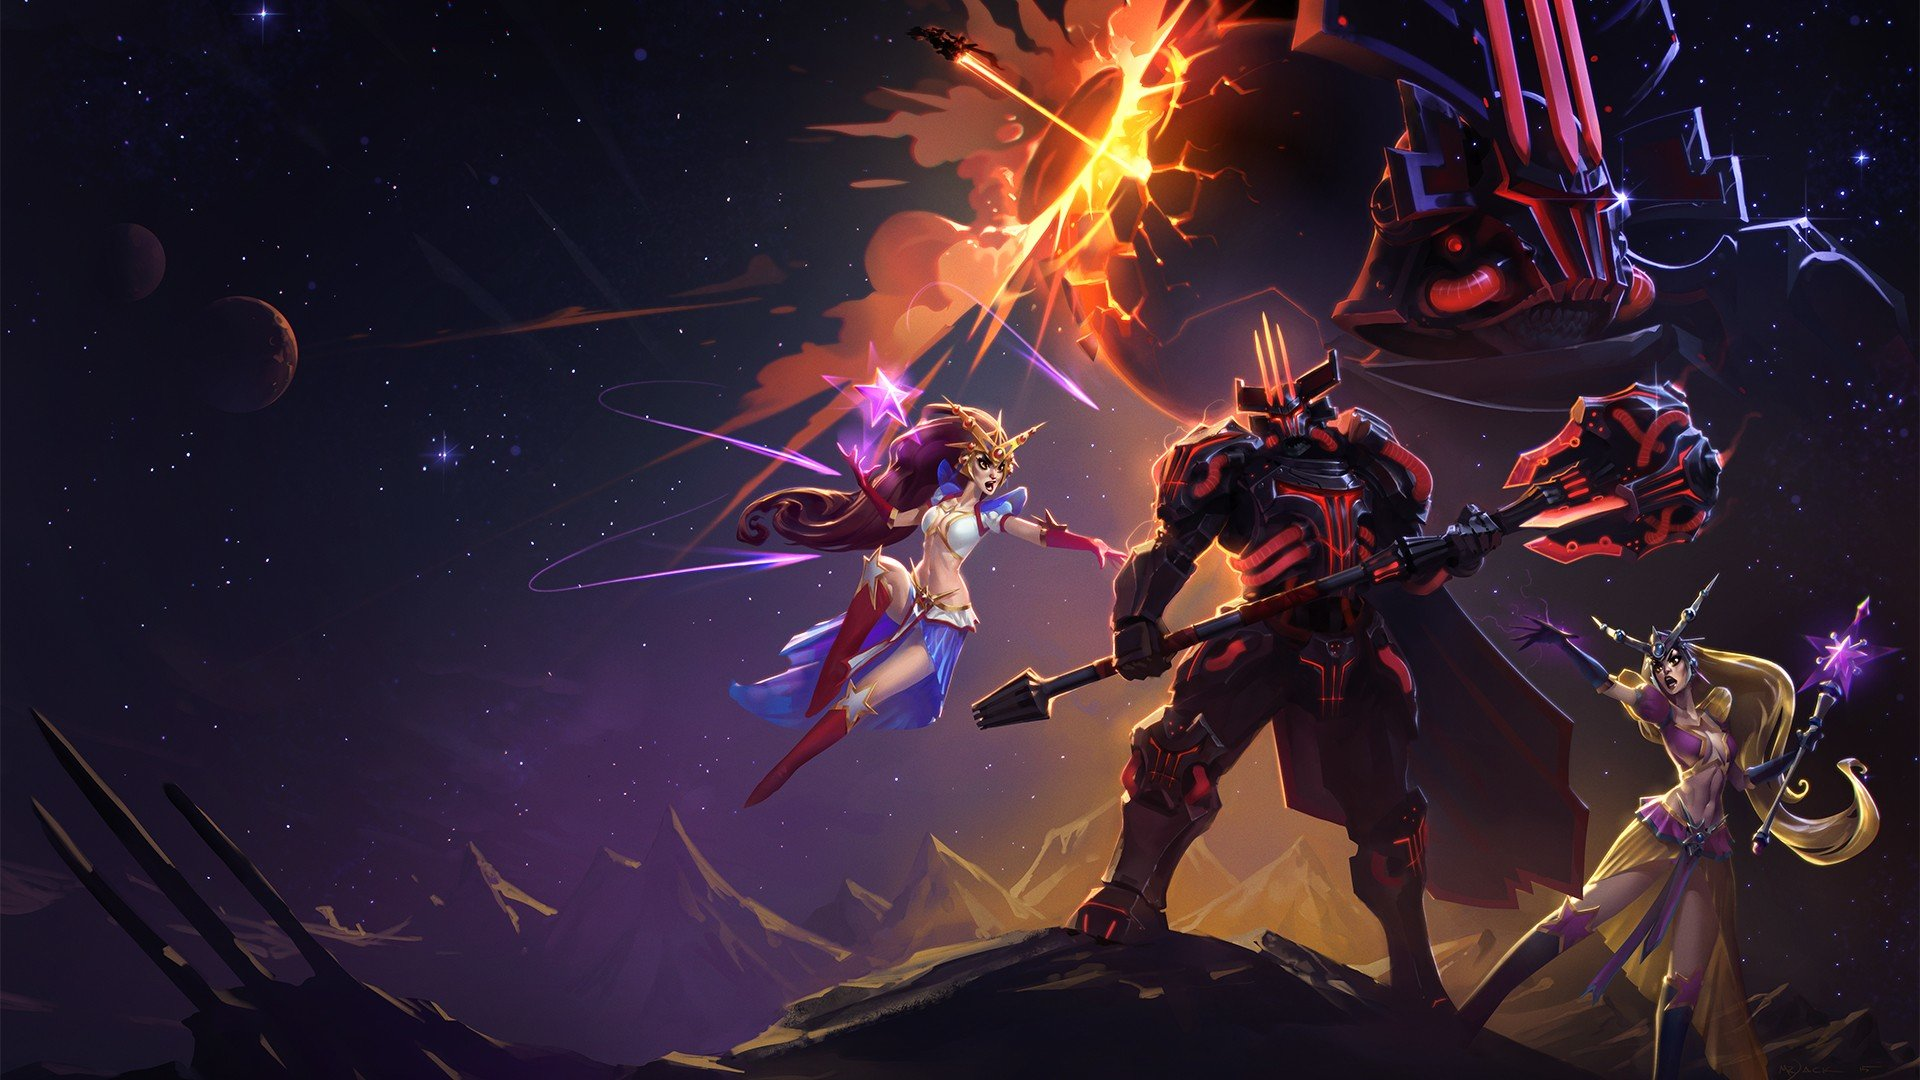 High Resolution Heroes Of The Storm 1080p Wallpaper Space Leoric